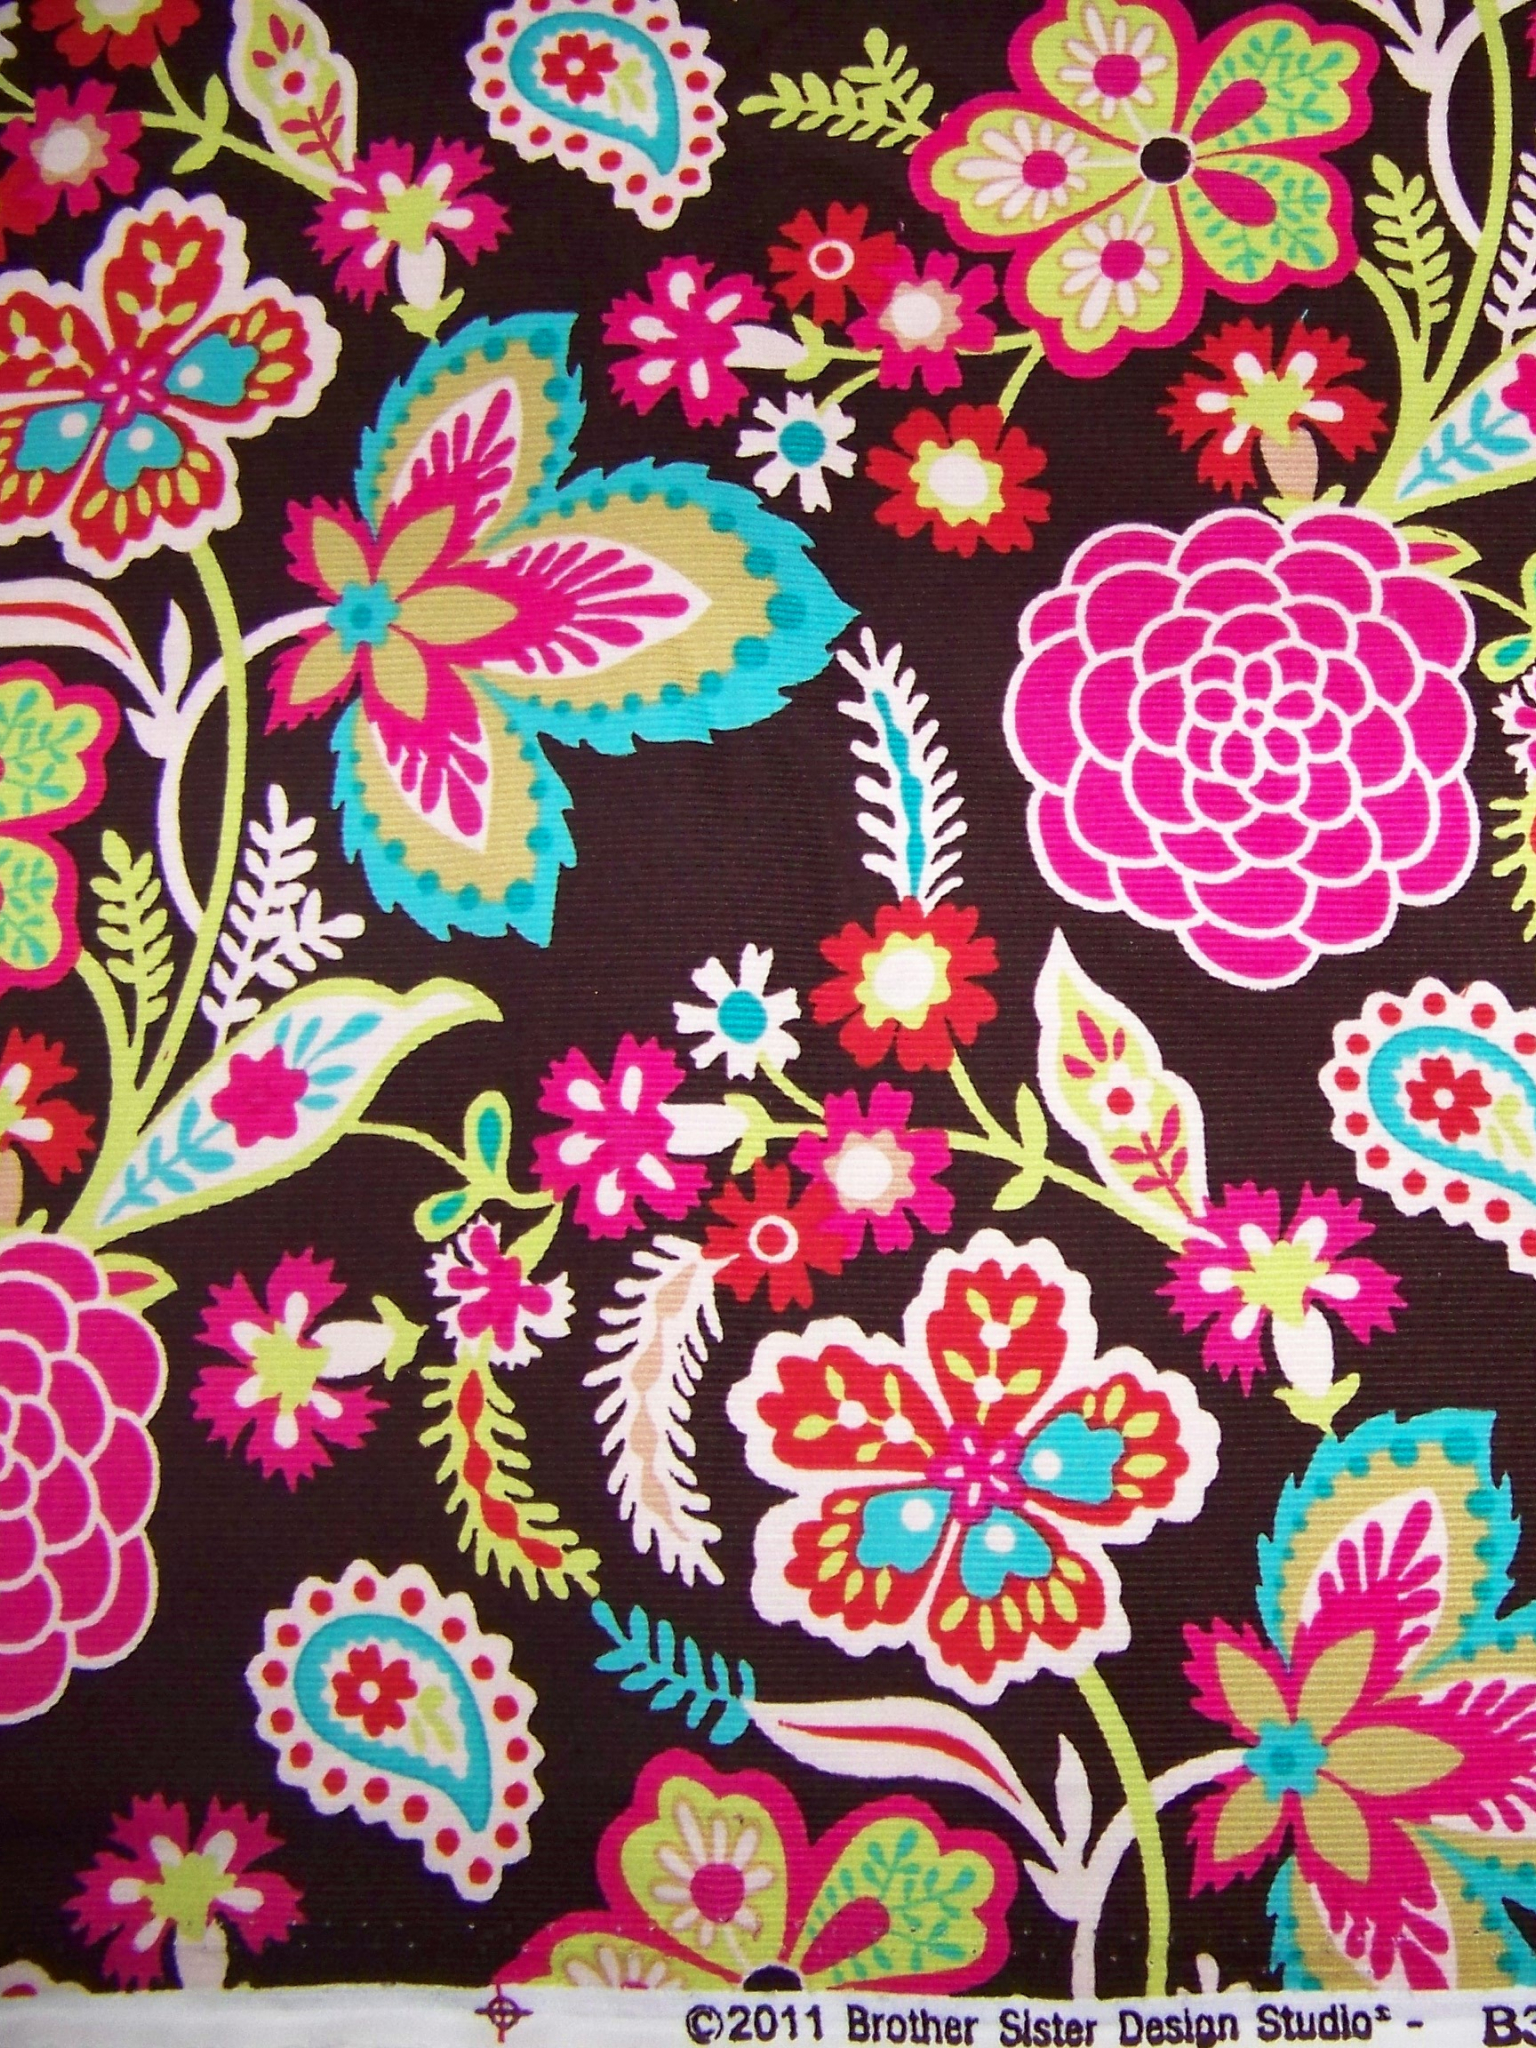 Free Download Bright Floral Print With Bright Floral Print I